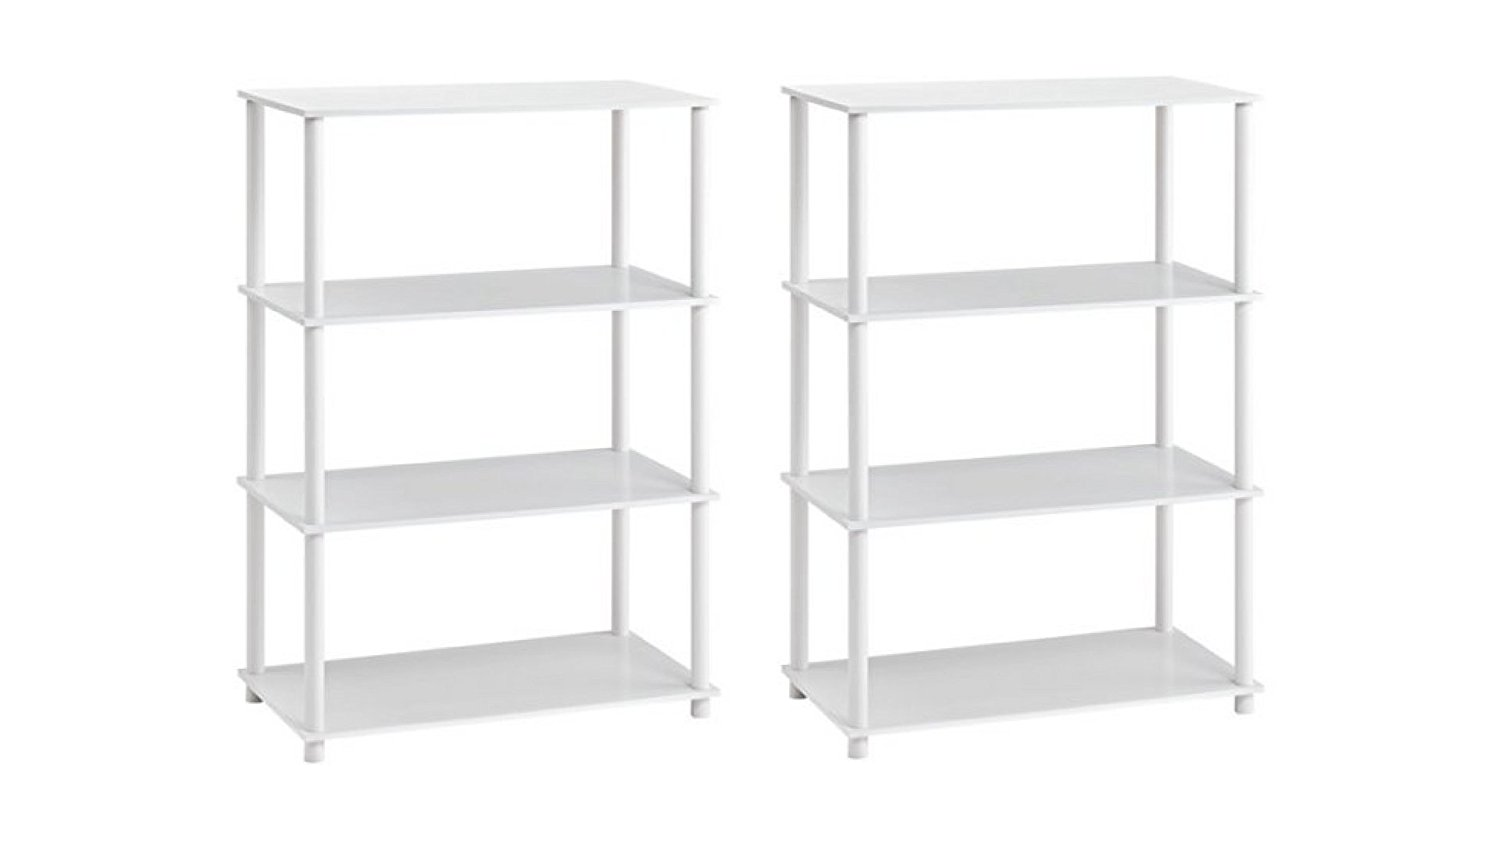 "Mainstays 29.61"" W X 15.55""D X 42.60""H Wood and Plastic No Tools 6-Cube Storage in 3 Shelves, (White)"